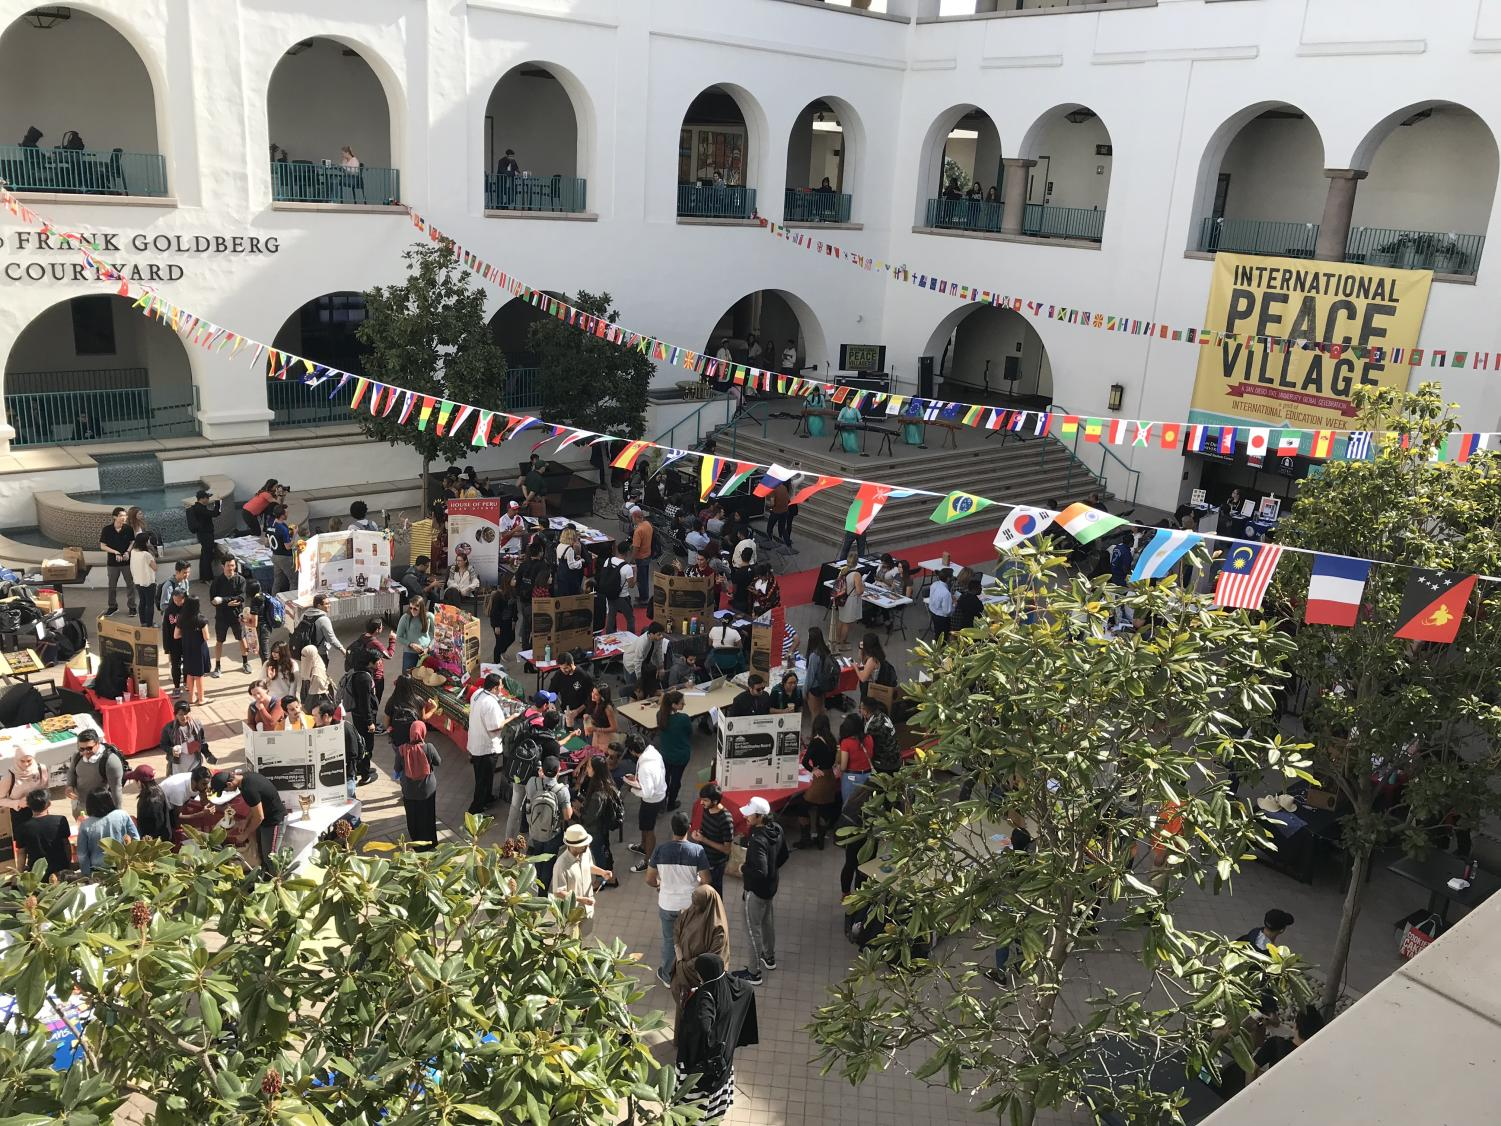 The International Peace Village on Nov. 15 attracted many new attendees as the organizers taught students about different countries and cultures.